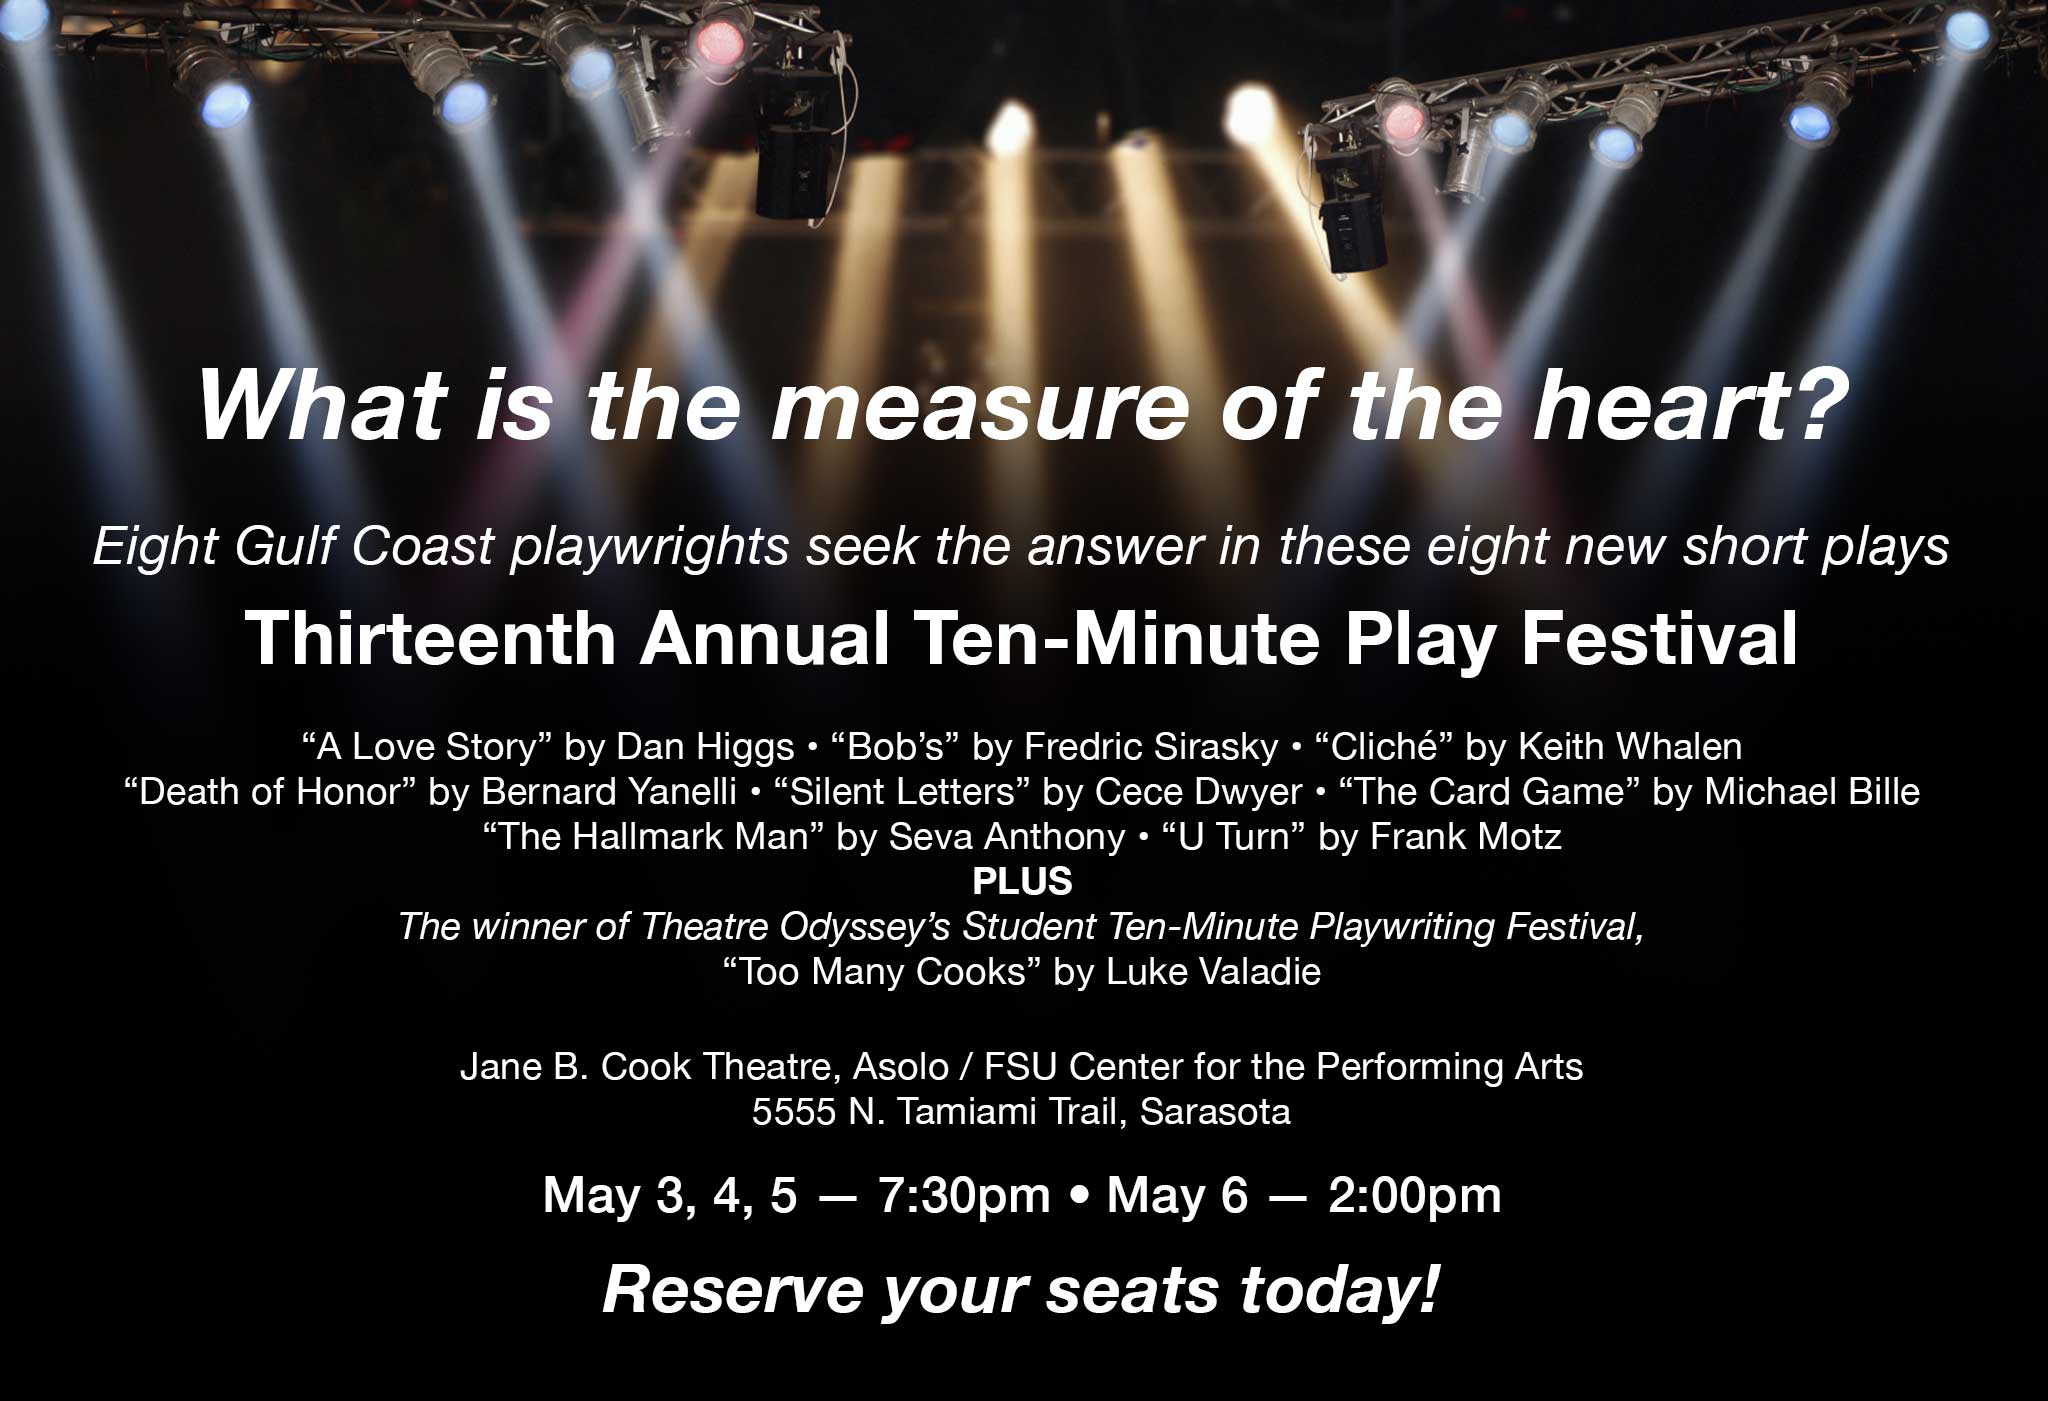 Thirteenth Annual 2018 Ten-Minute Play Festival by Theatre Odyssey, Sarasota